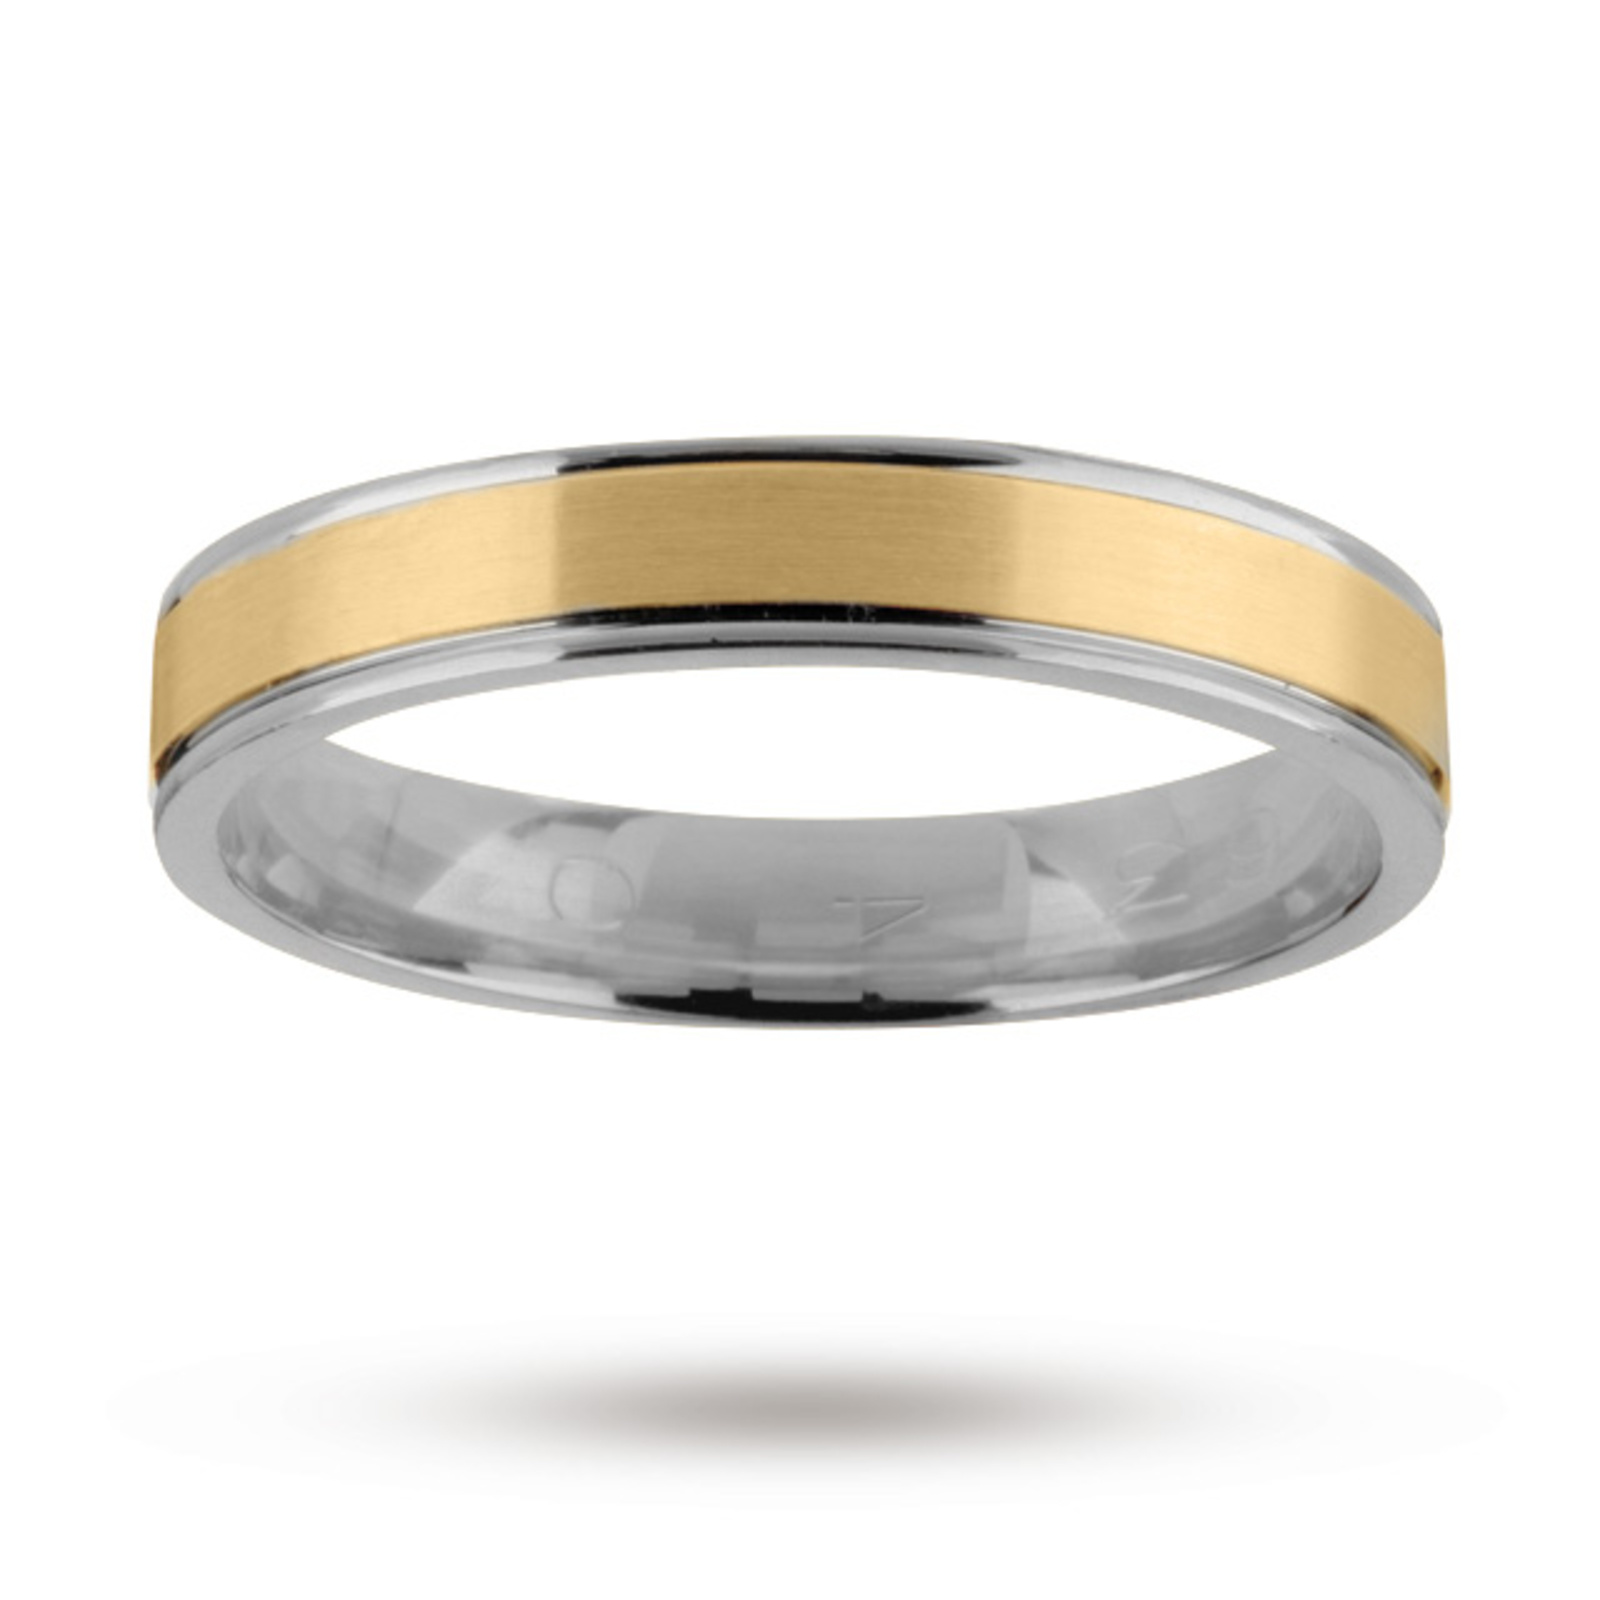 Gents wedding band in 18 carat yellow and white gold